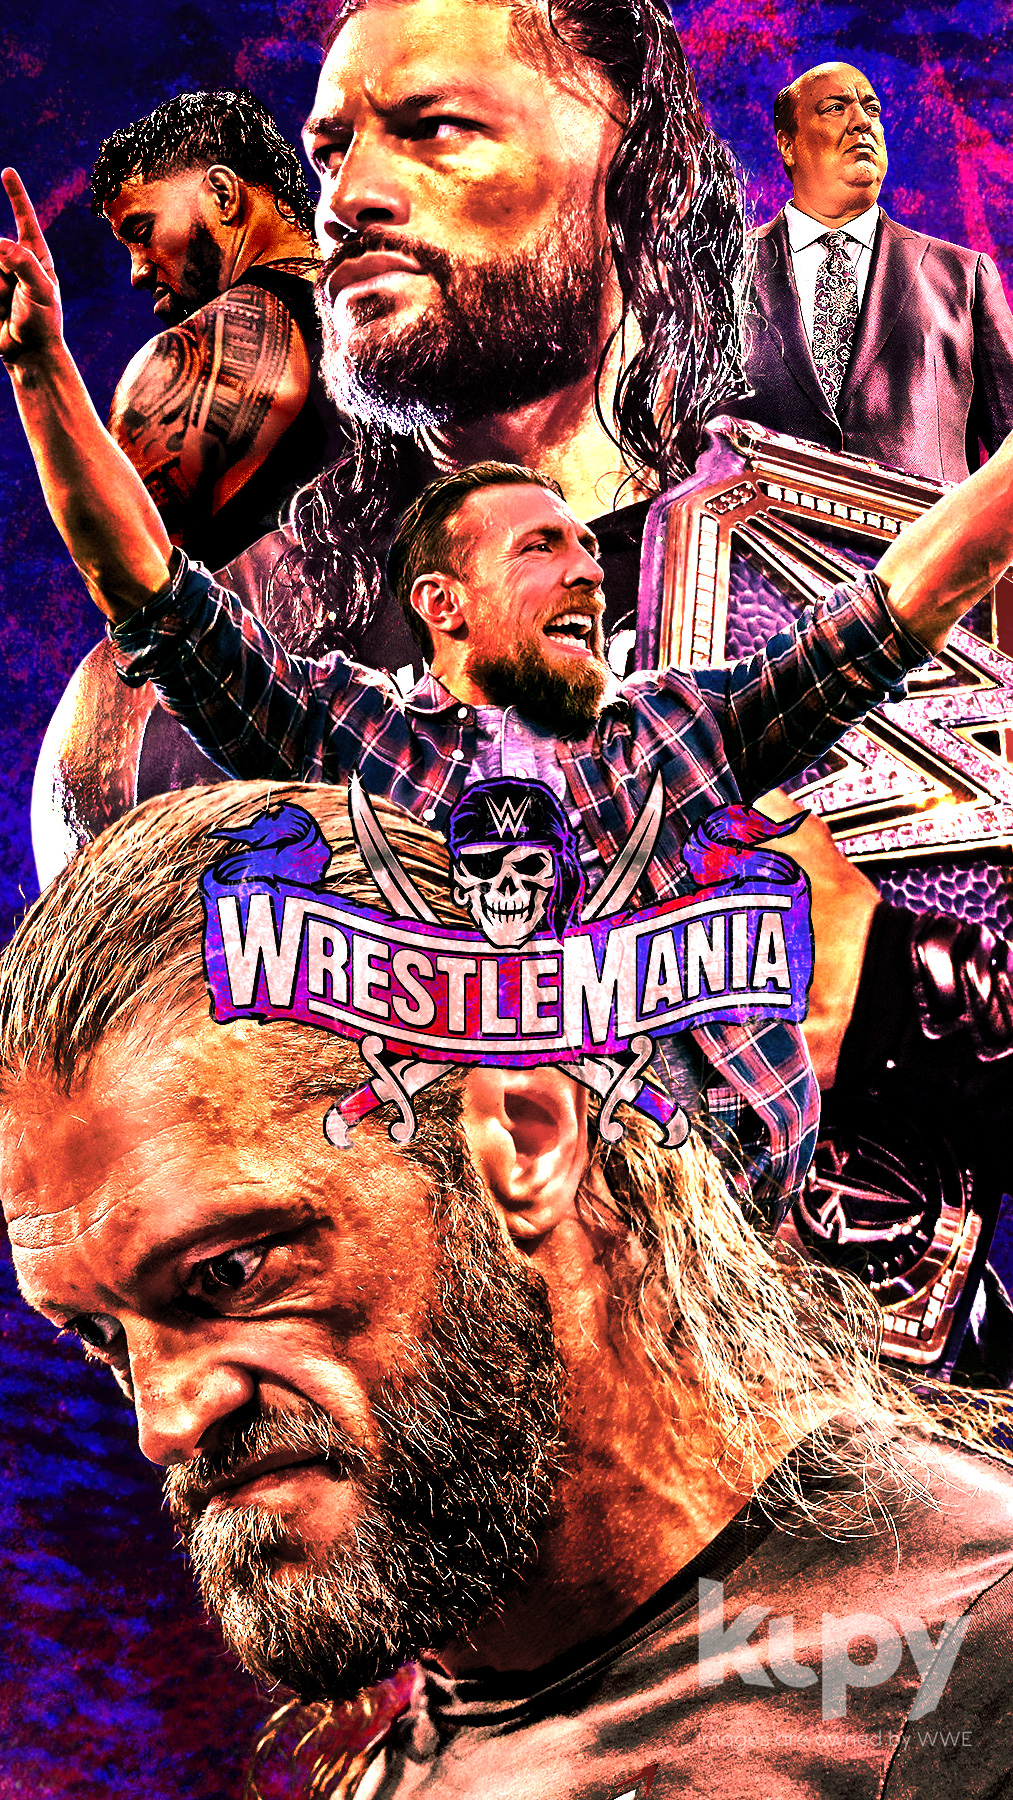 Kupy Wrestling Wallpapers The Latest Source For Your Wwe Wrestling Wallpaper Needs Mobile Hd And 4k Resolutions Available Edge Archives Kupy Wrestling Wallpapers The Latest Source For Your Wwe